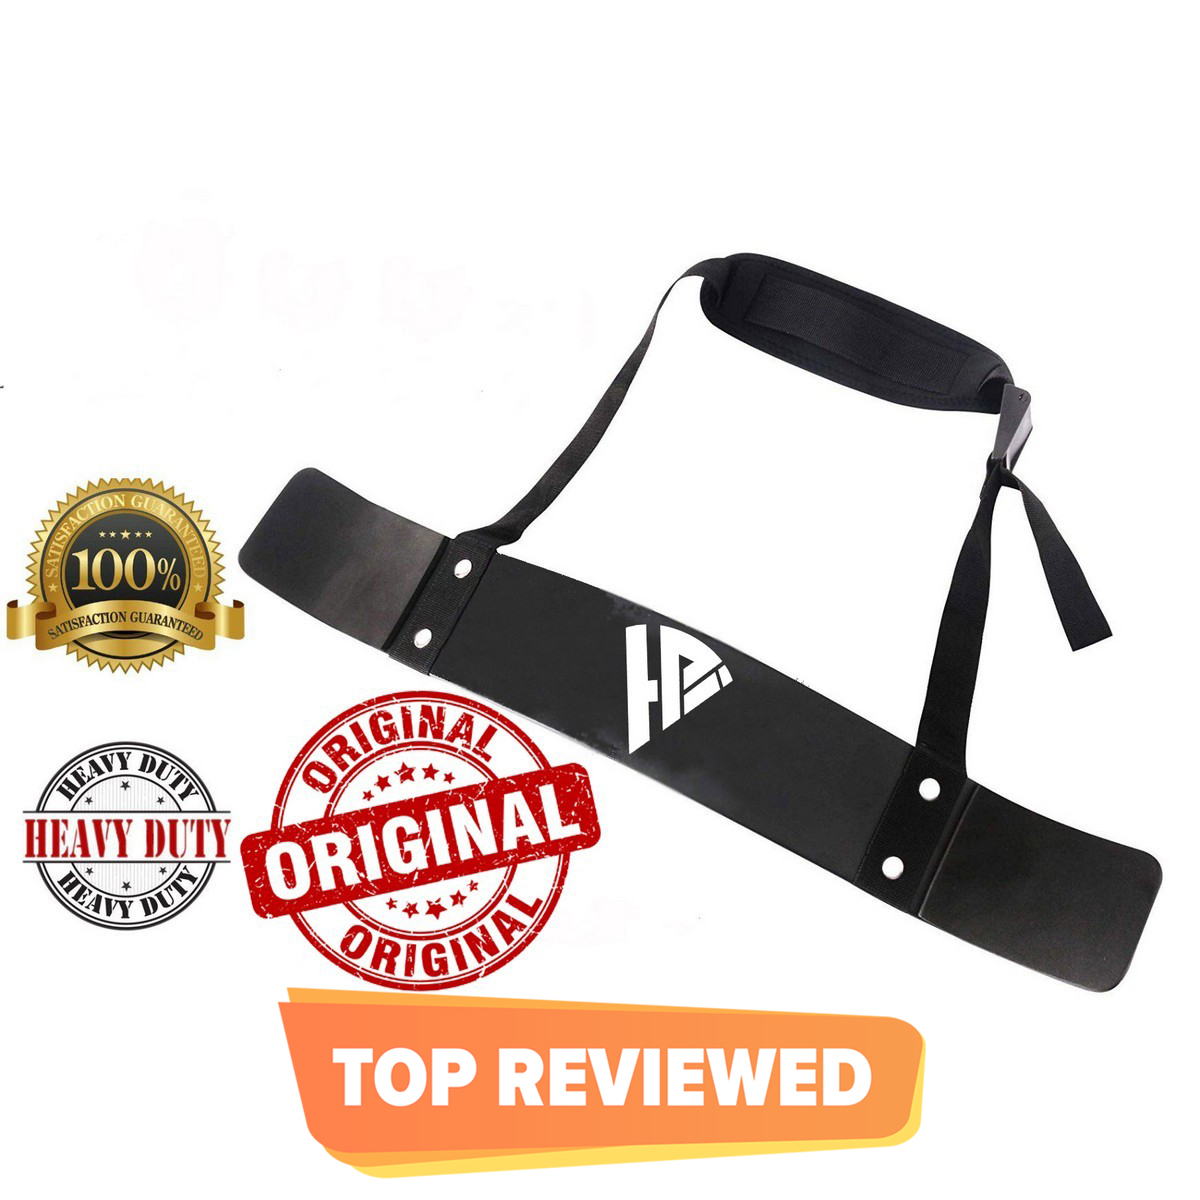 Premium Quality Bicep Isolator, Arm Blaster, Barbell Bar Weight Lifting for Gym Curls Weightlifting Strength Support for Big Biceps Muscle Gain  Arm Support Straps Gym TrainingHome Gym tools Indoor & outdoor.